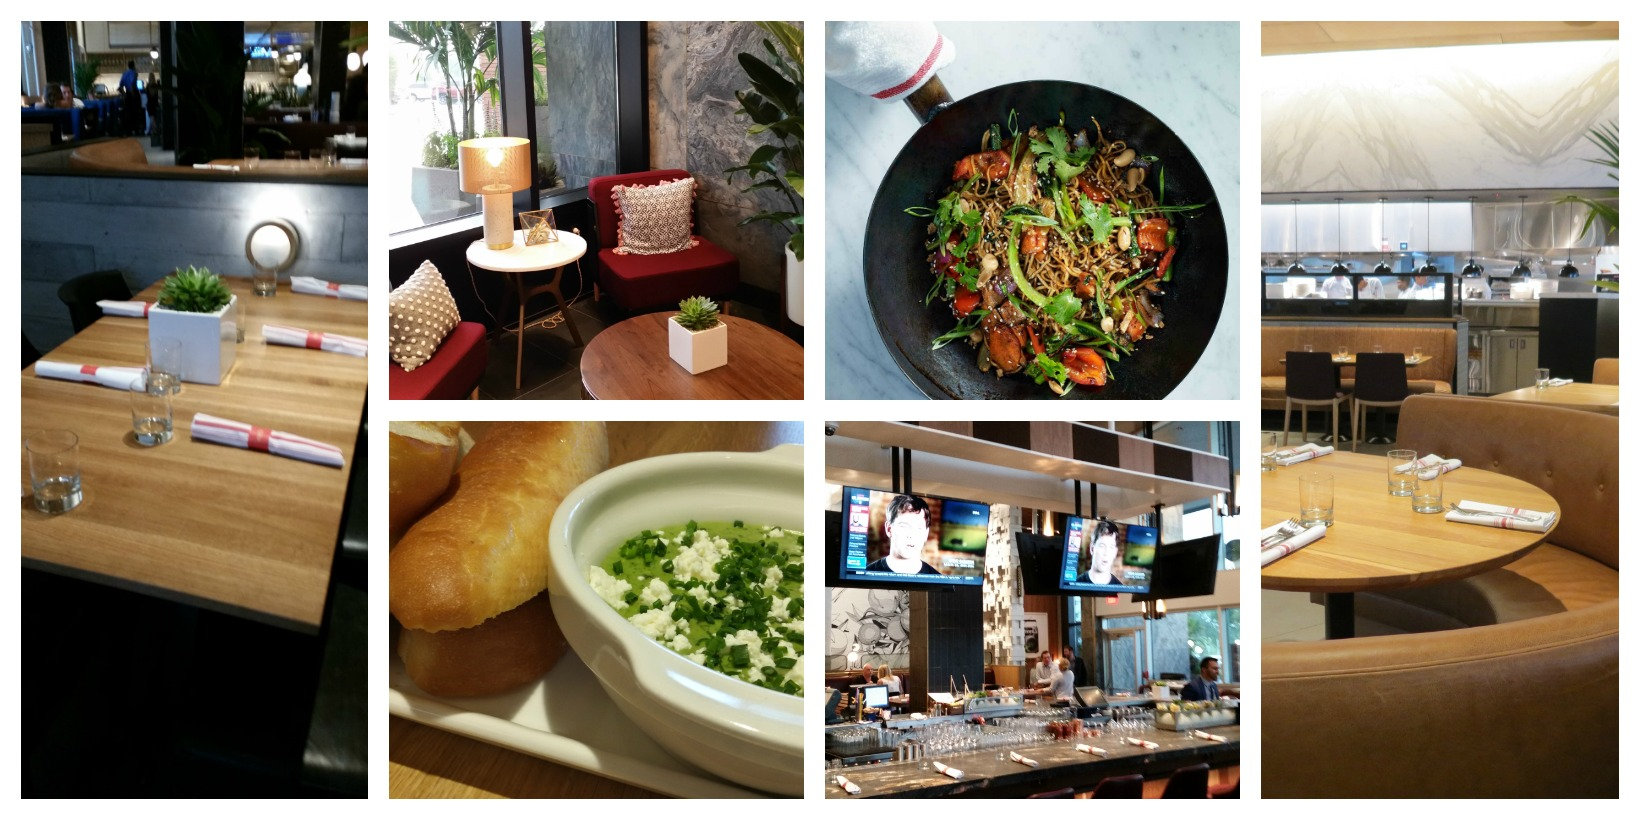 hotels with kitchen in orlando glass table eat at earls postcards and passports